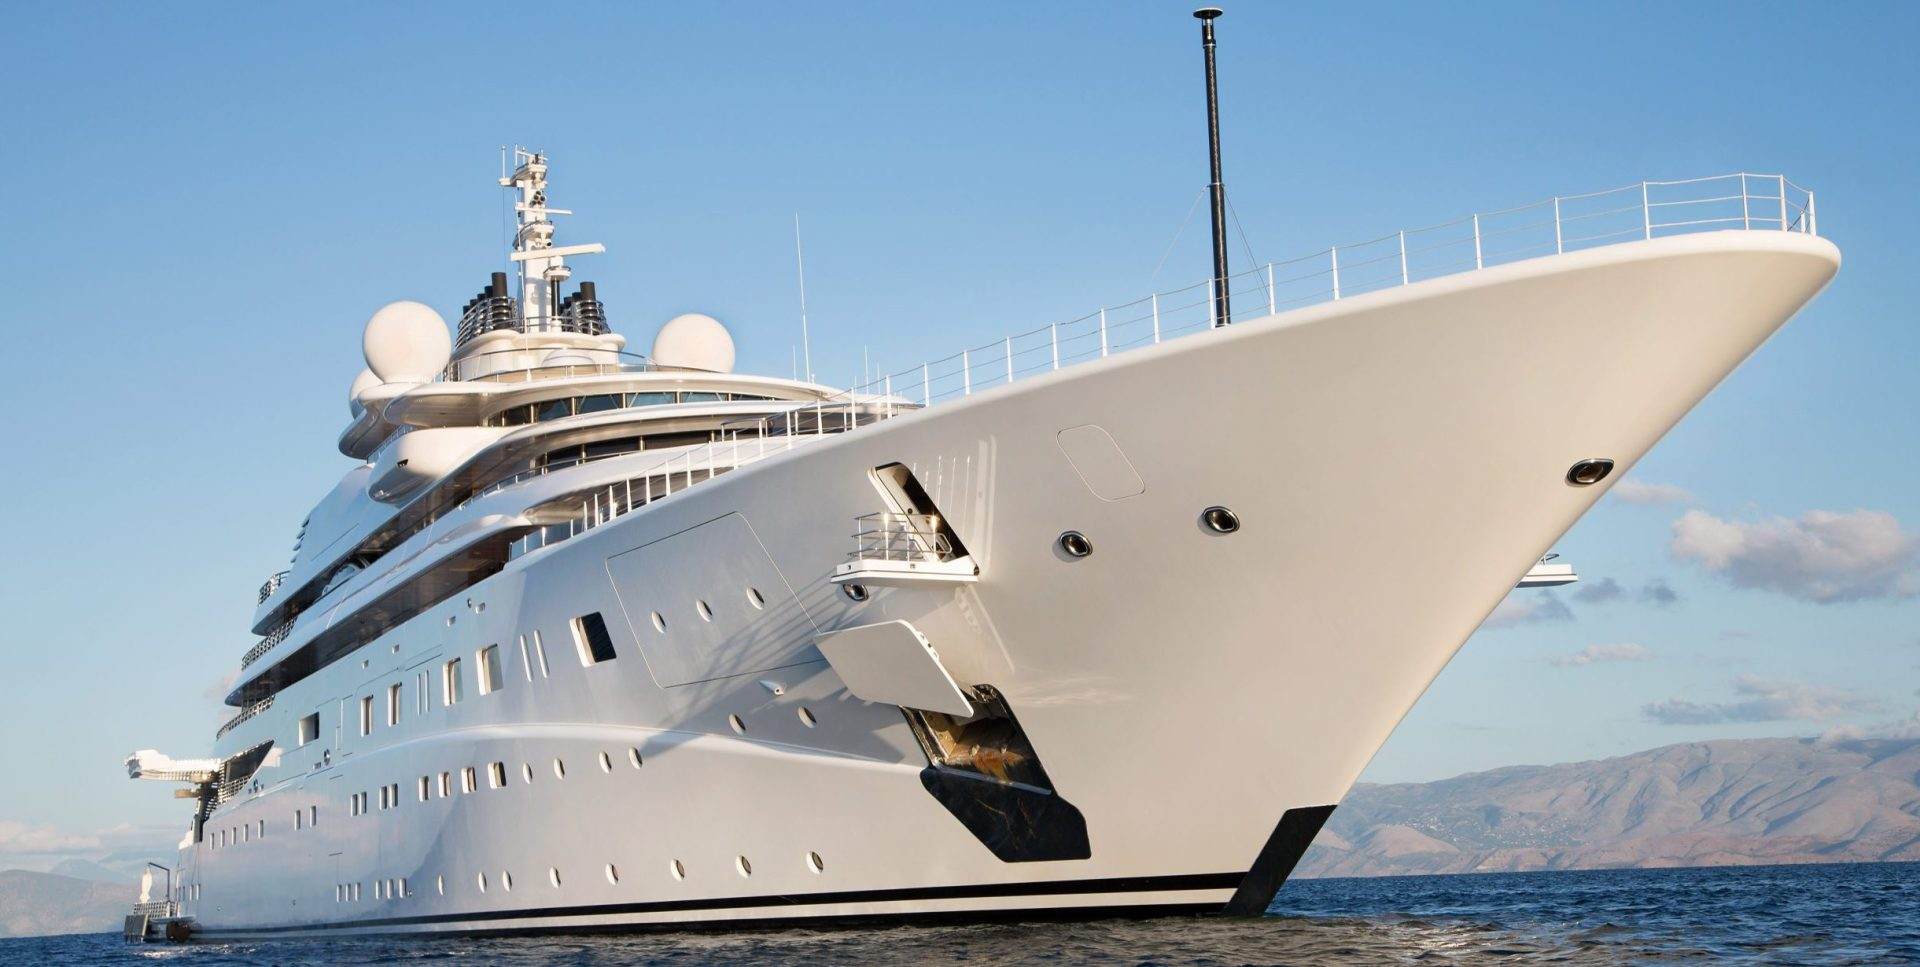 Megayacht at sea on a clear day with mountains in the background